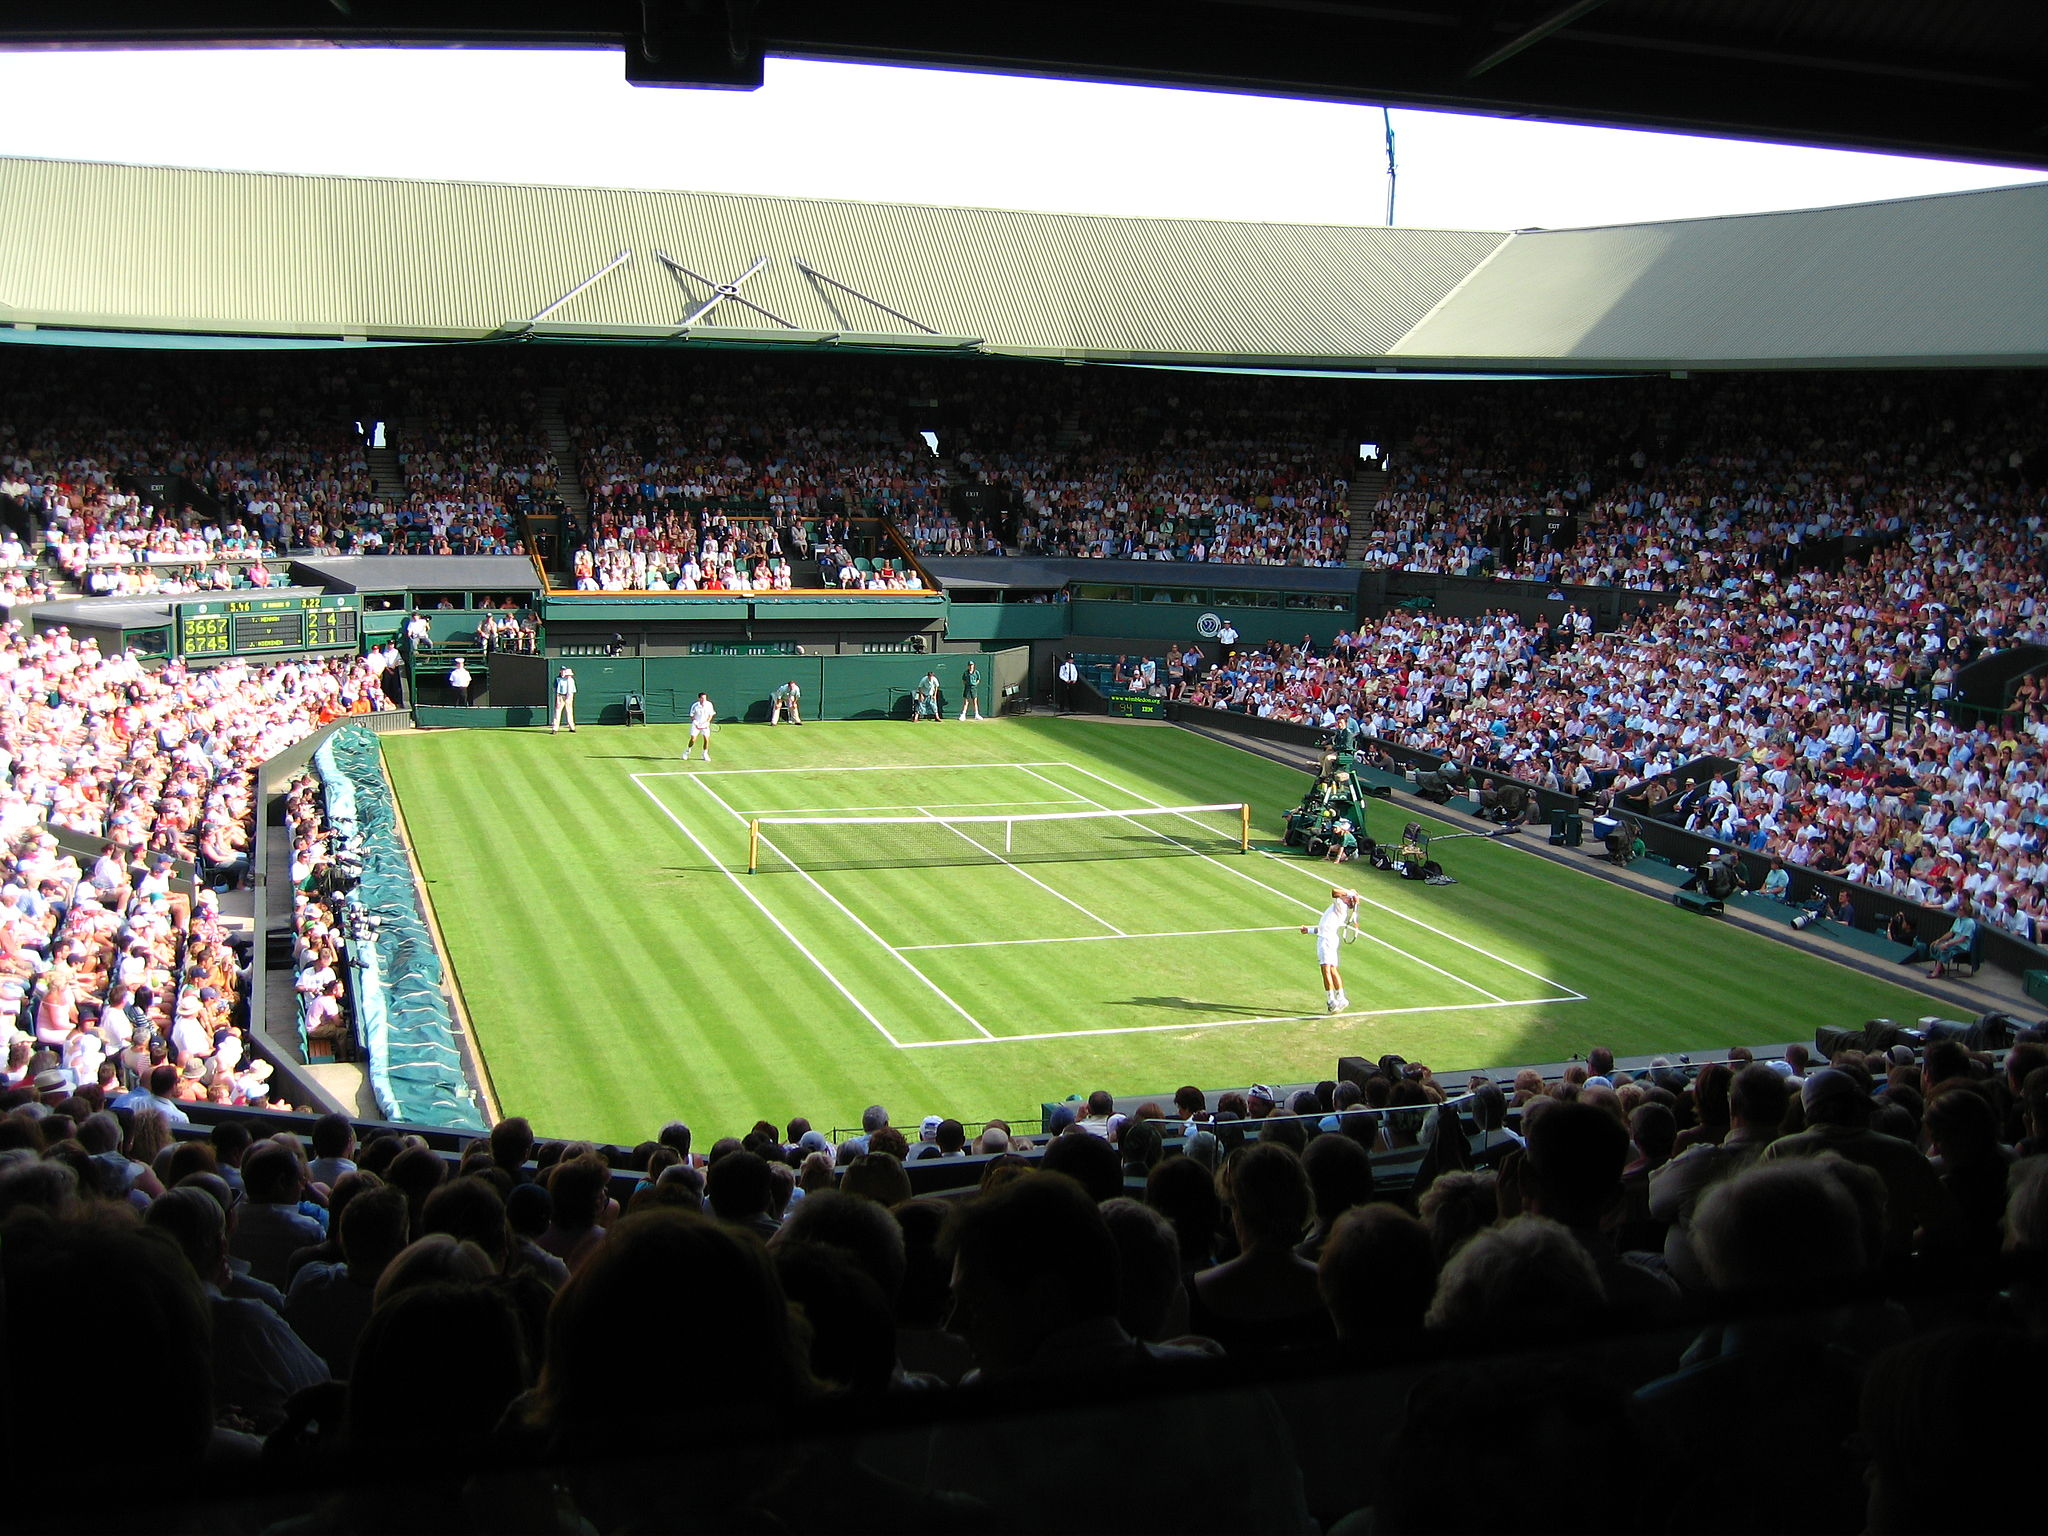 By Spiralz from England (5.46pm ~ Centre Court) [CC BY 2.0 (http://creativecommons.org/licenses/by/2.0)], via Wikimedia Commons